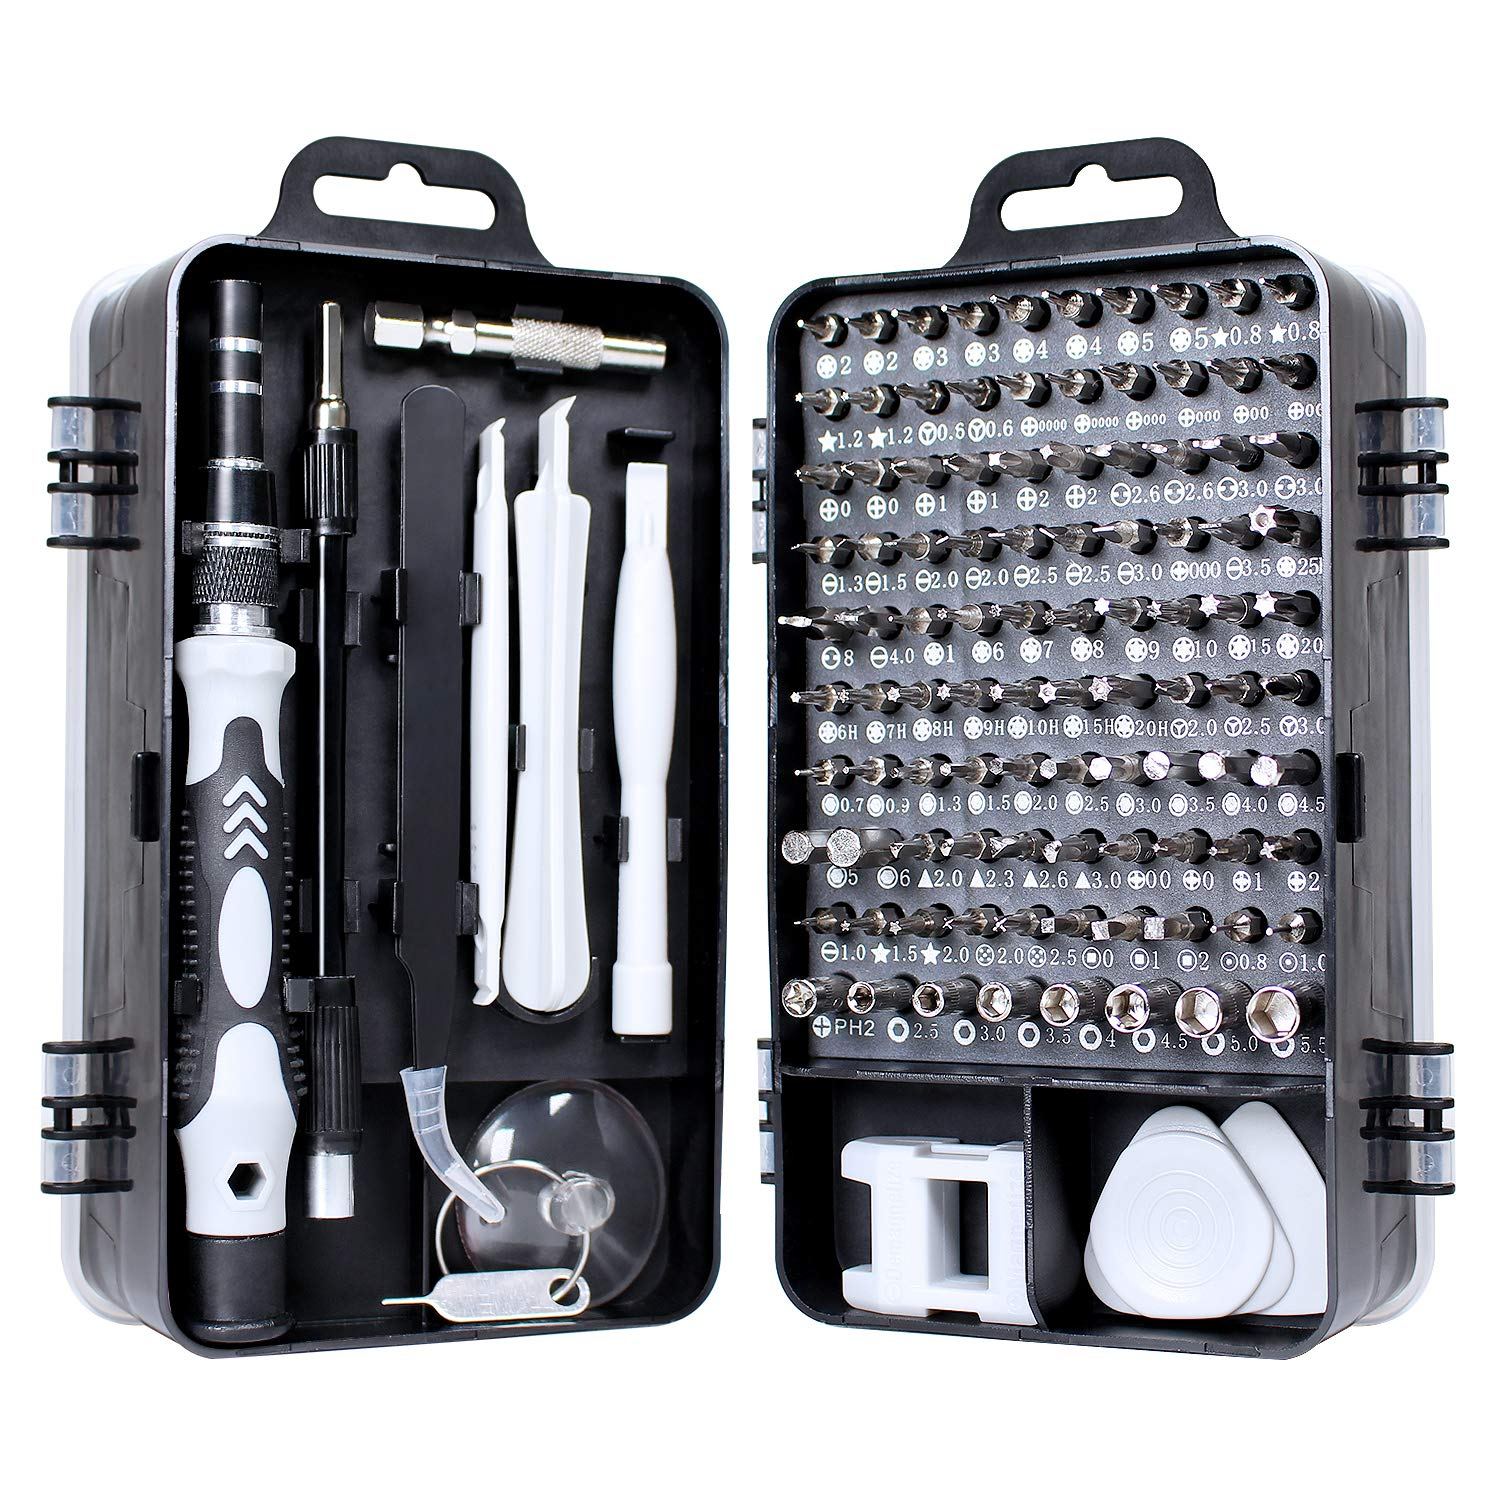 Great quailty screw driver set